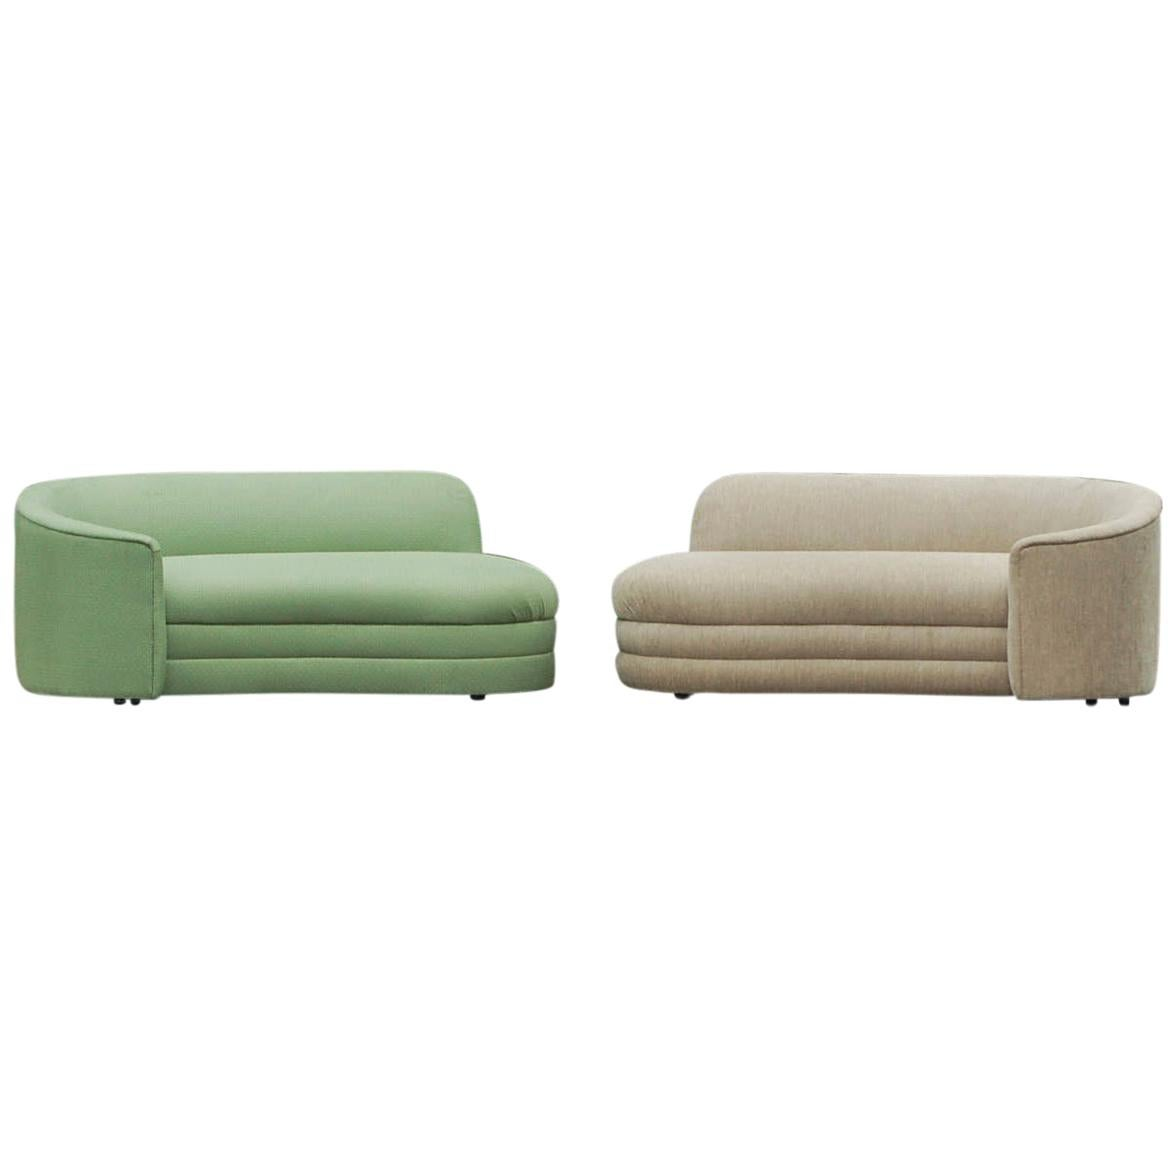 pair of asymmetrical mid century modern chaise lounge sofas in art deco form